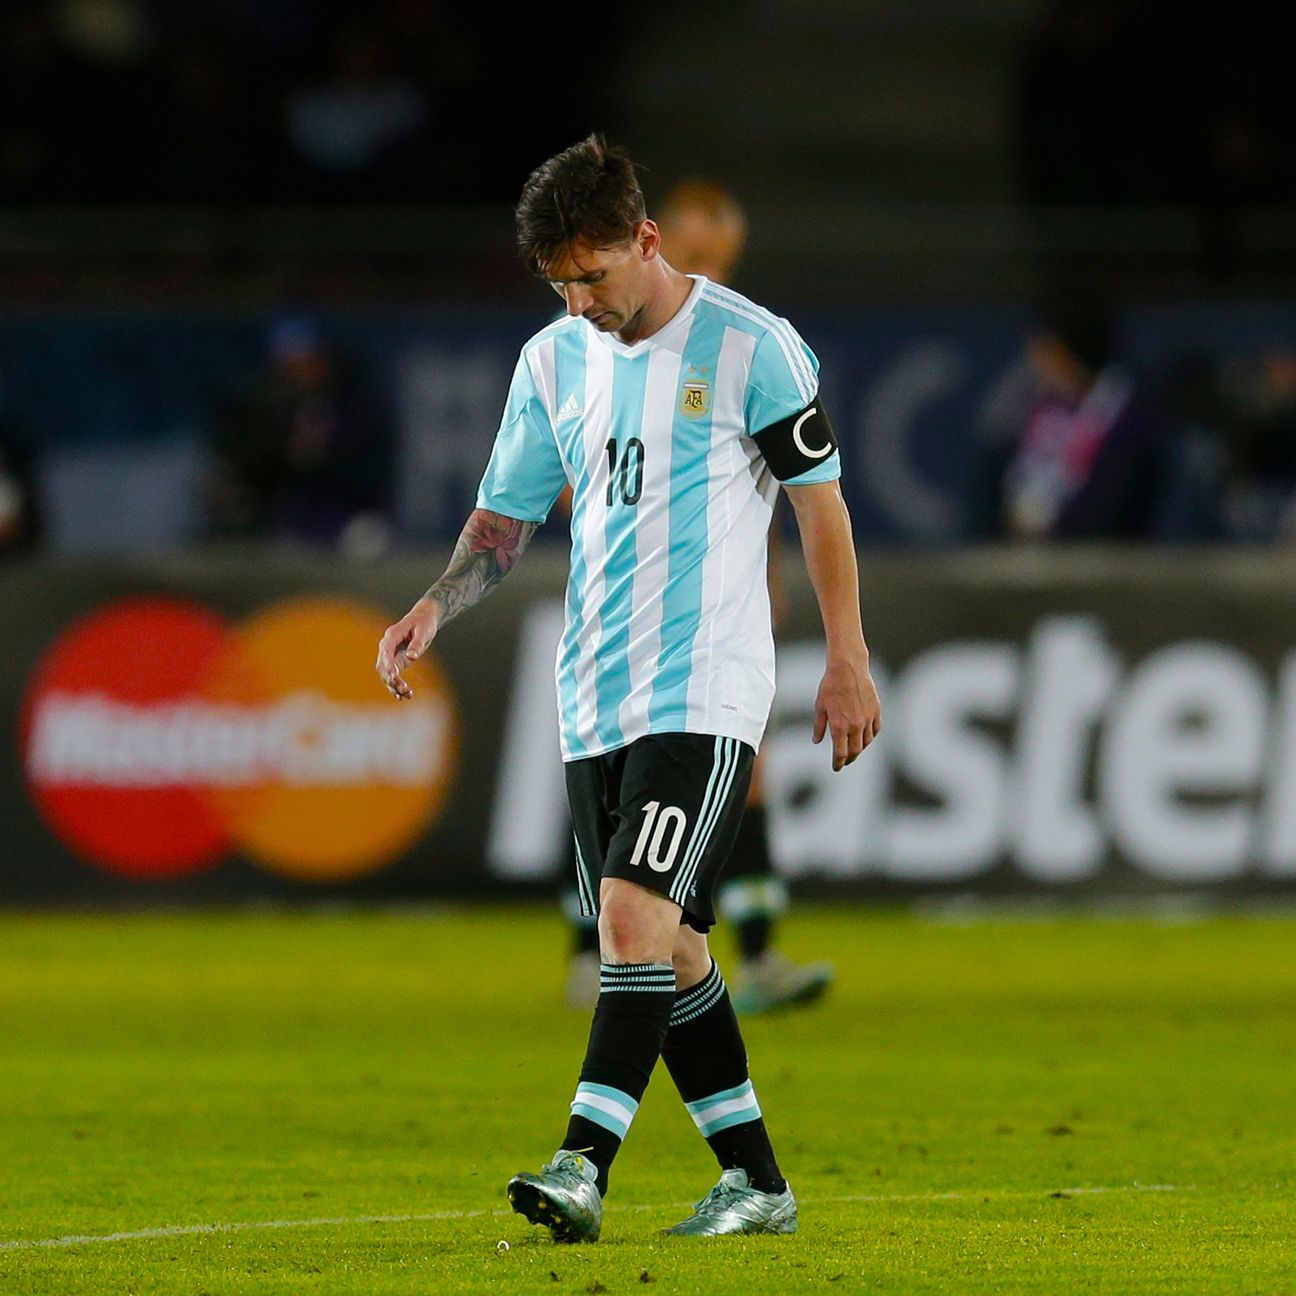 Lionel Messi and Argentina suddenly find themselves in a tight spot in Group B after their draw with Paraguay.